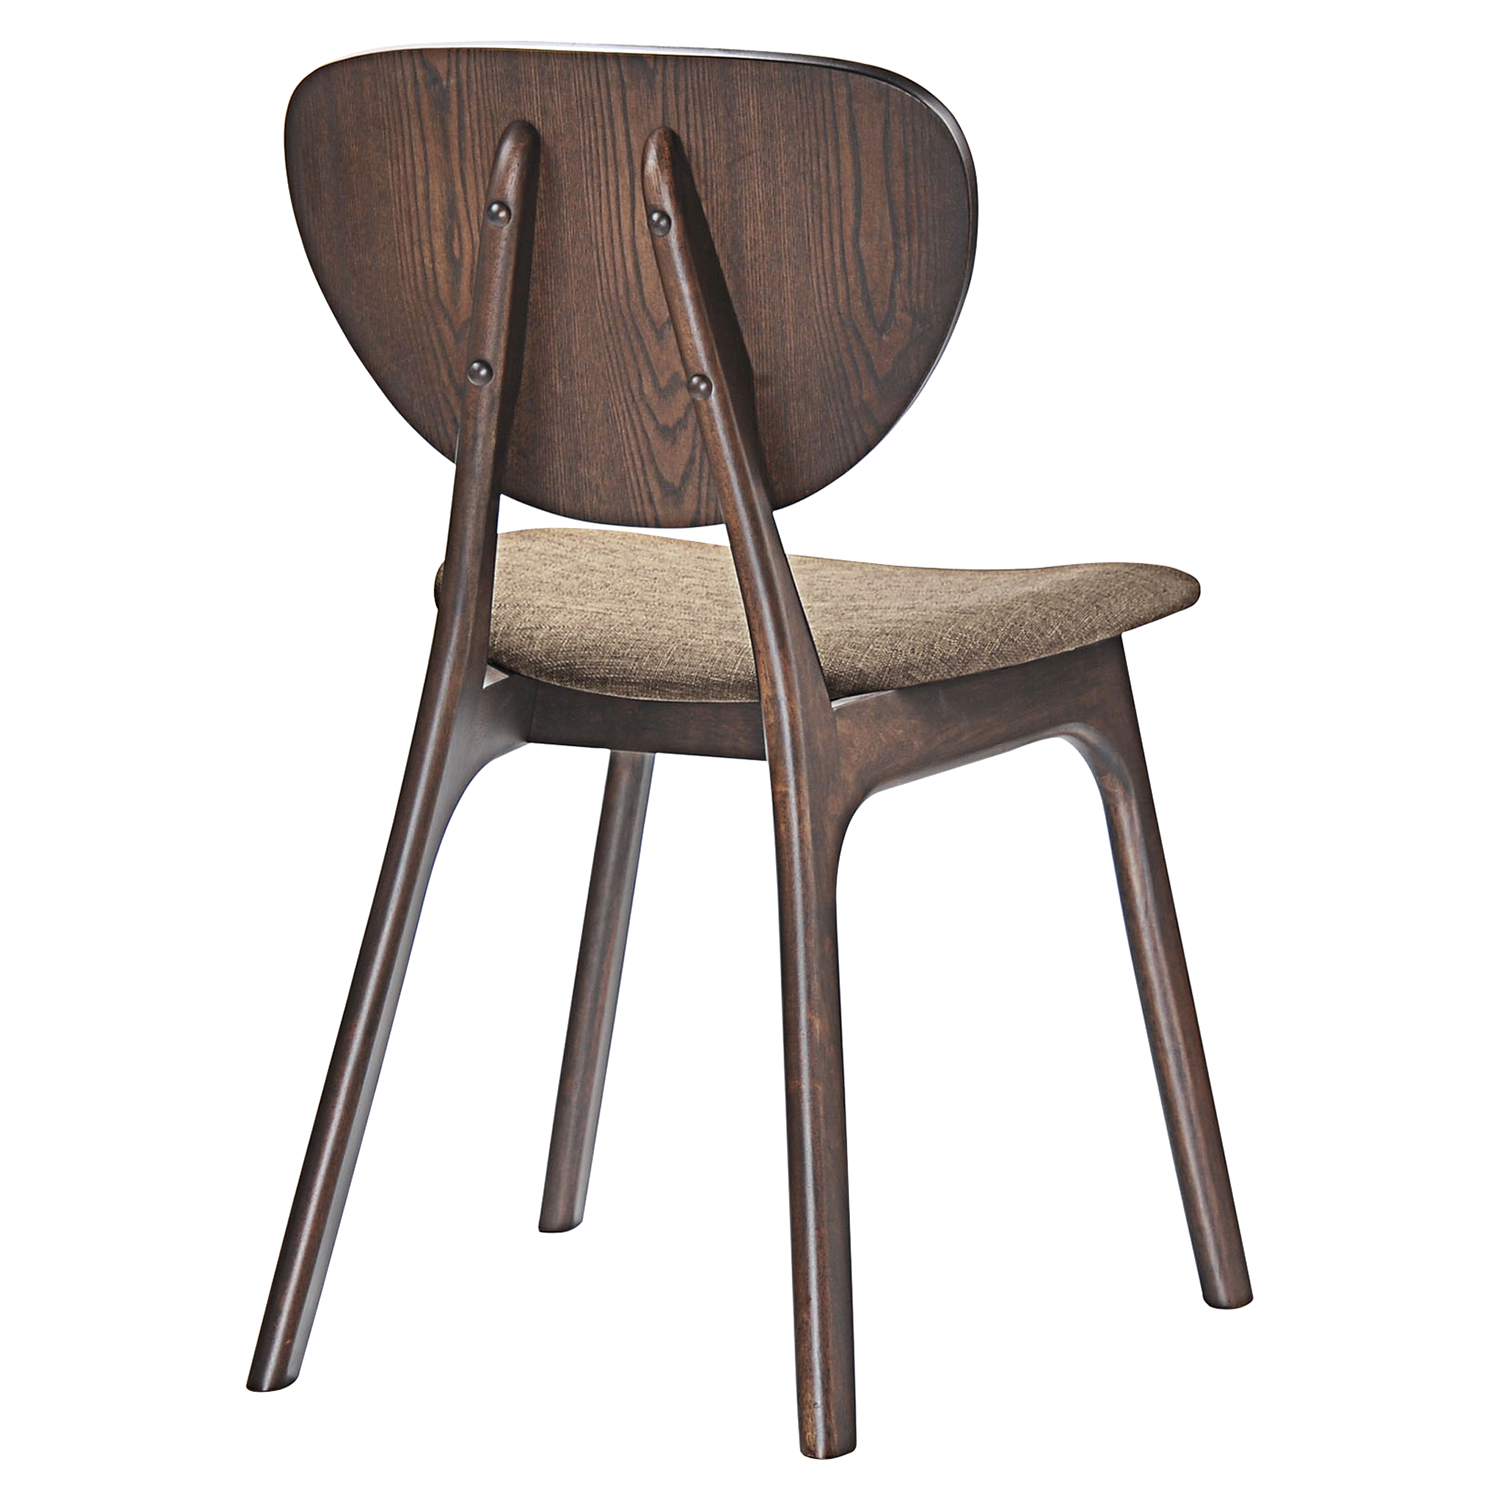 Murmur Dining Side Chair - Wood Frame (Set of 4) - EEI-2063-WAL-SET